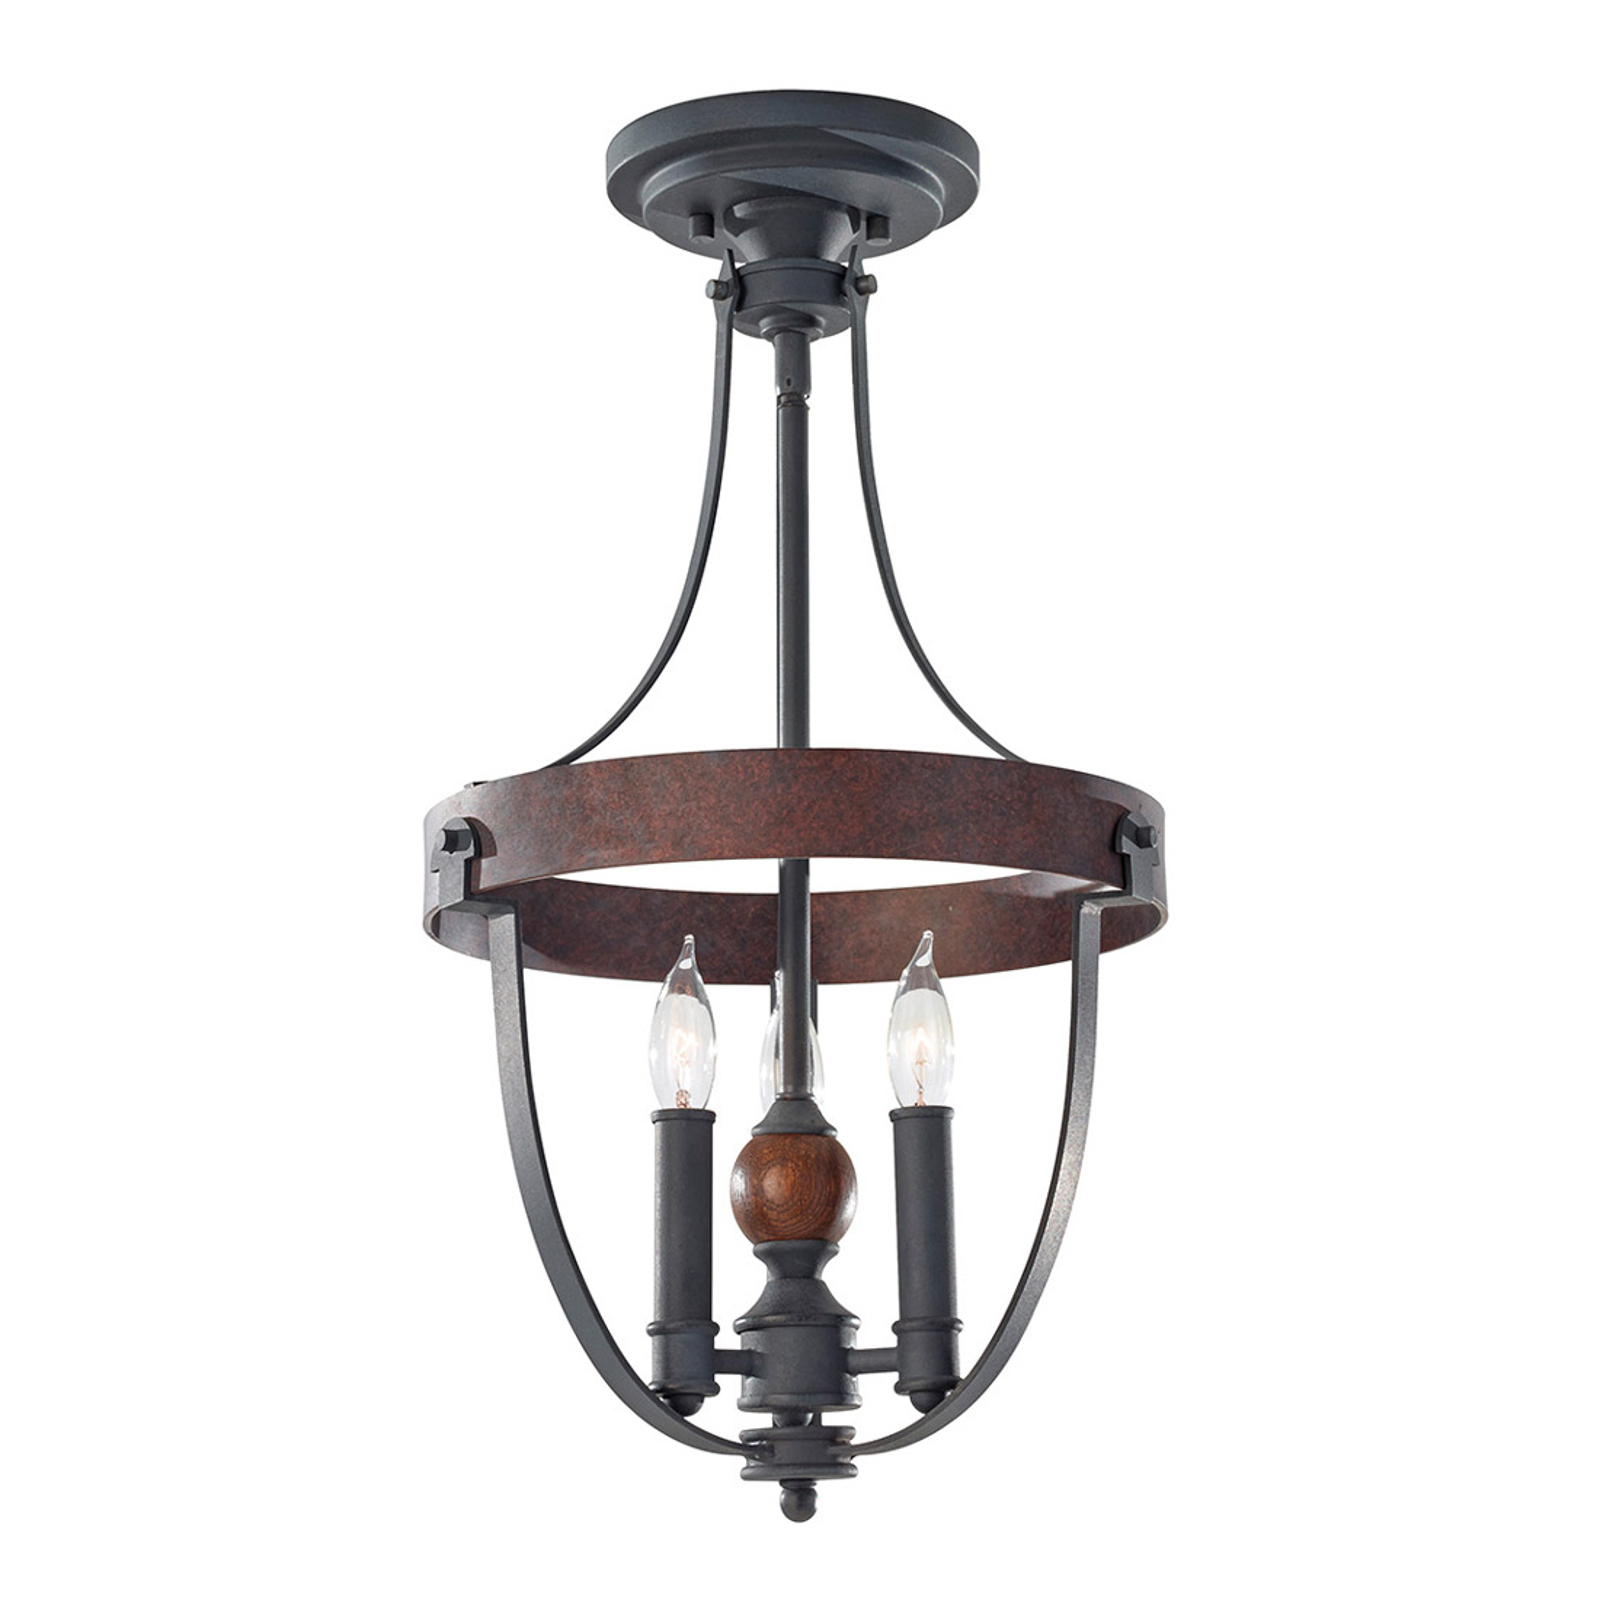 Country-stil-taklampe Alston